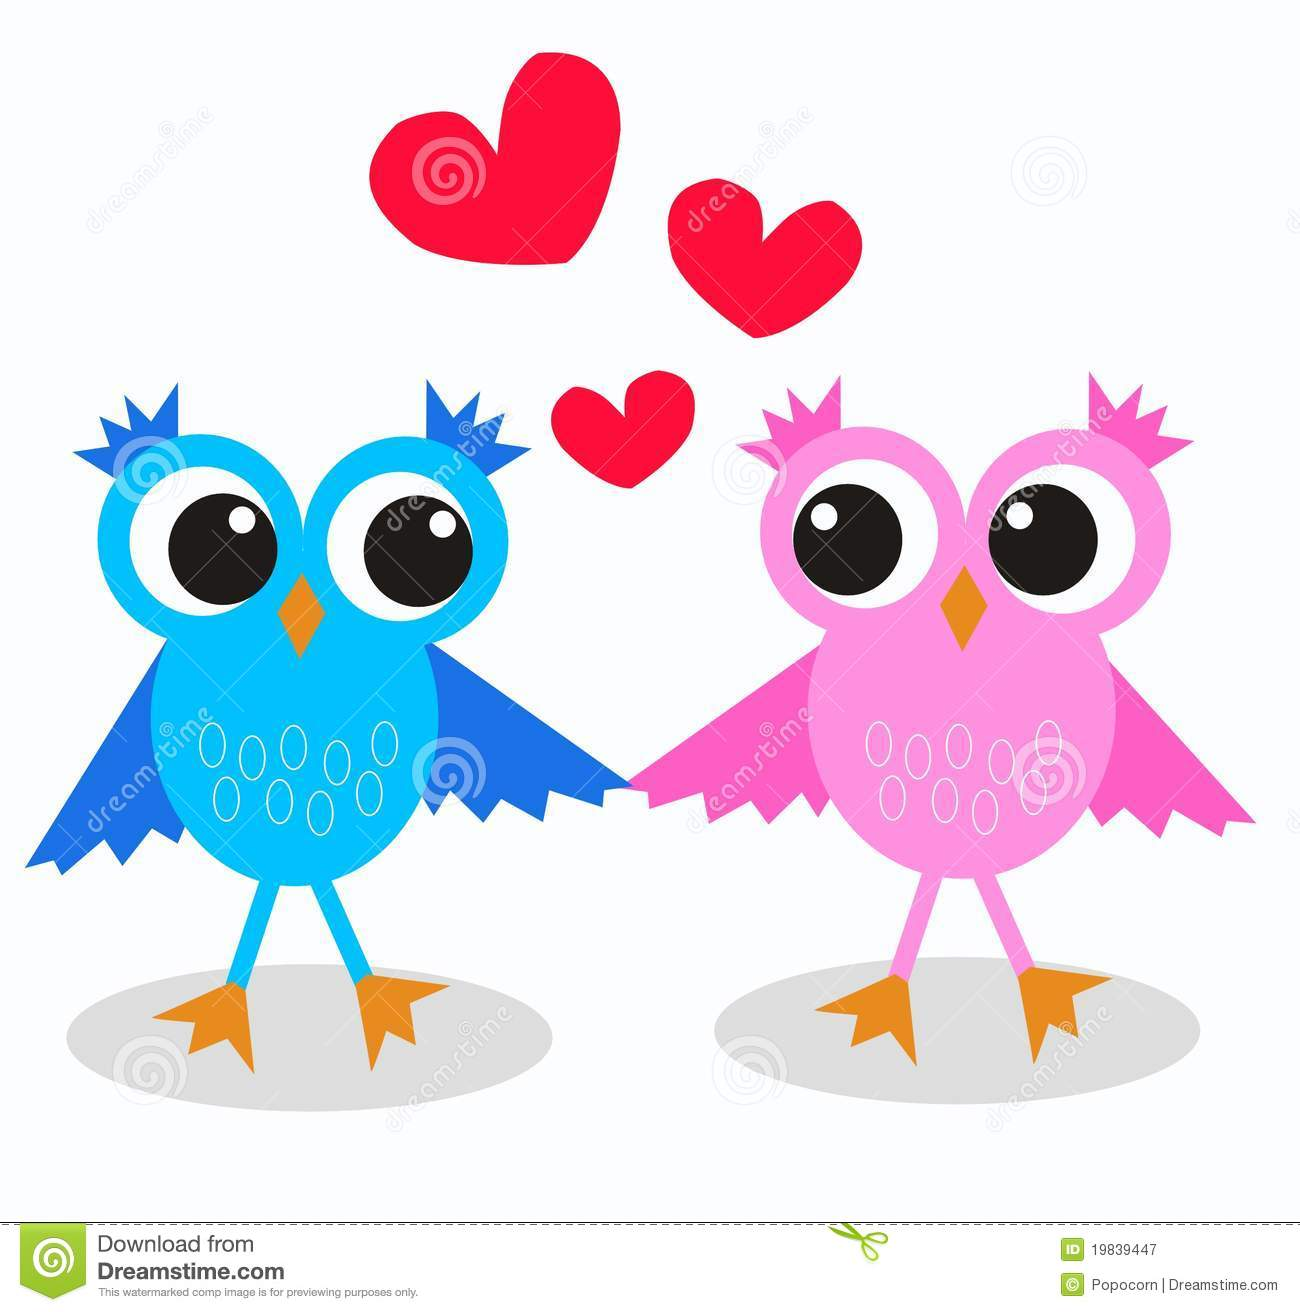 Cute Owl Cartoon Wallpaper Two Owls In Love Royalty Free Stock Photography Image